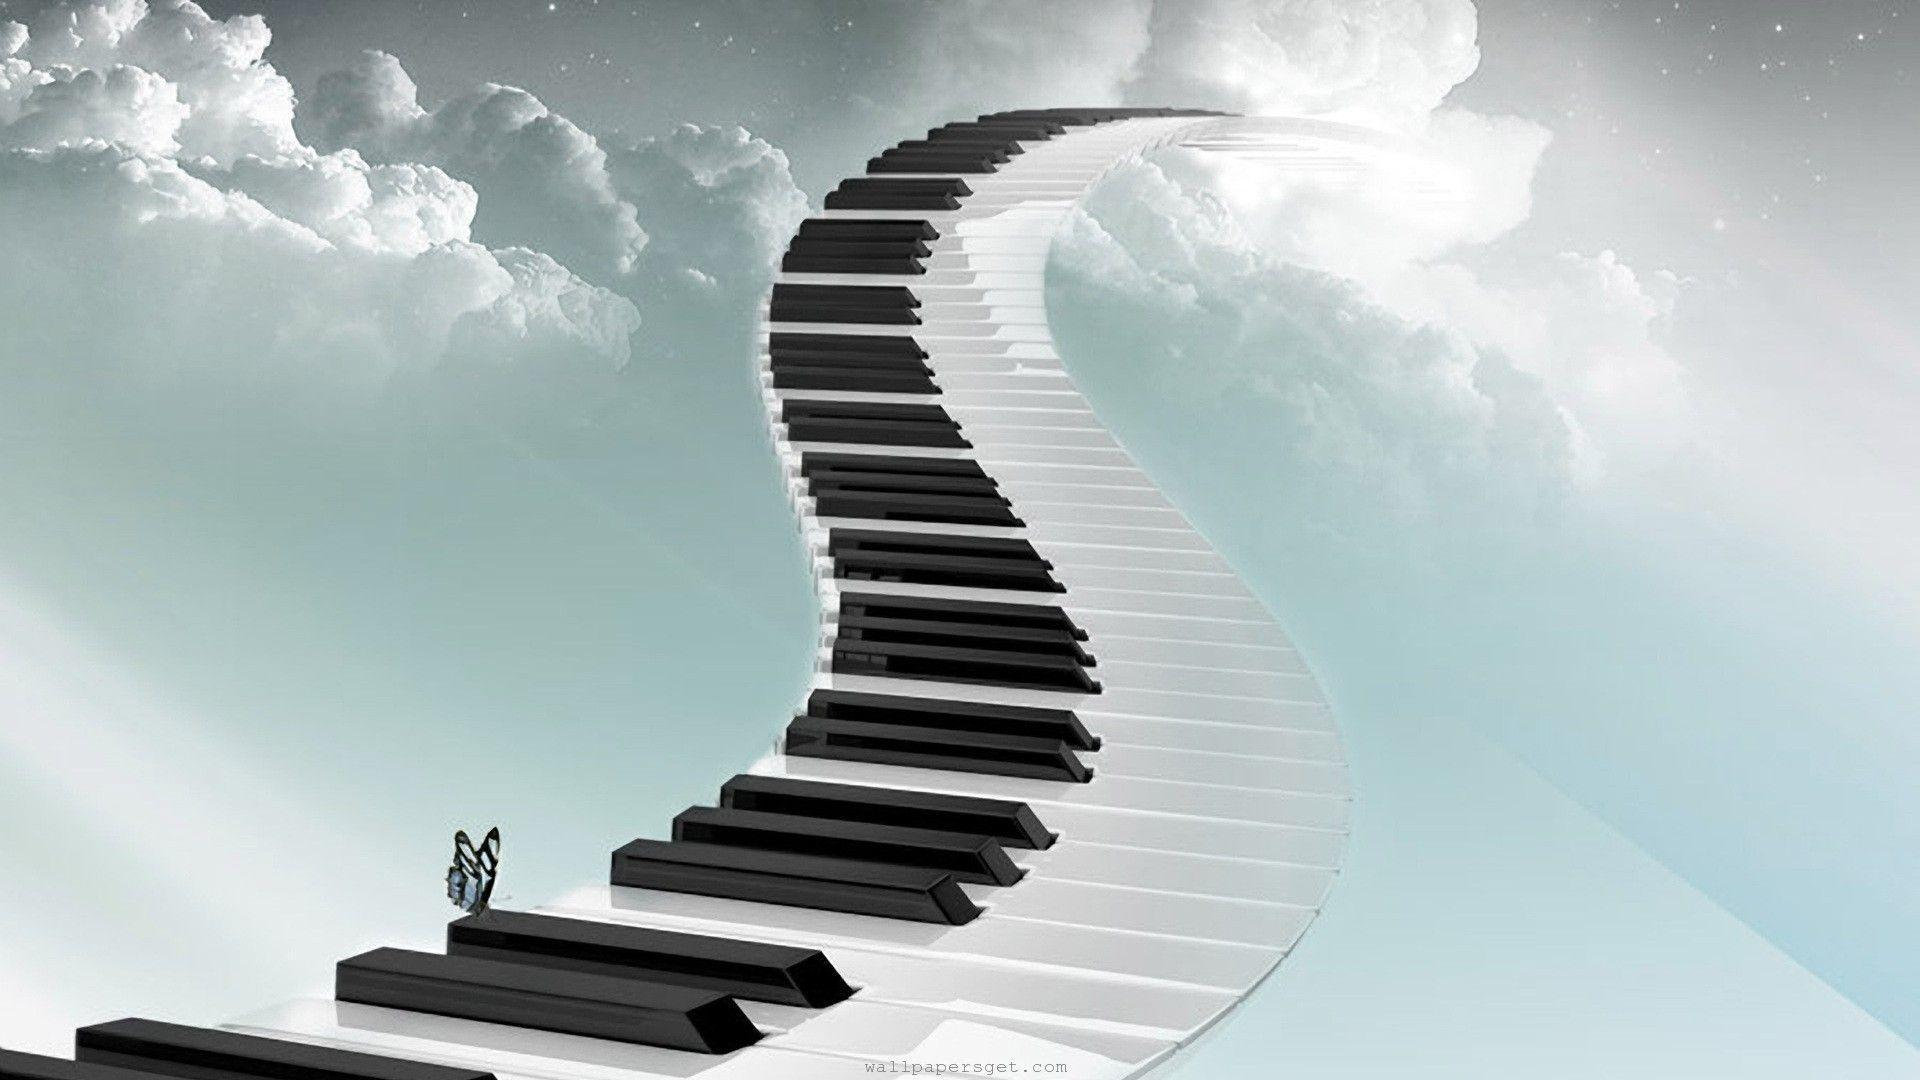 Piano Music Wallpaper: Music Keyboard Wallpapers